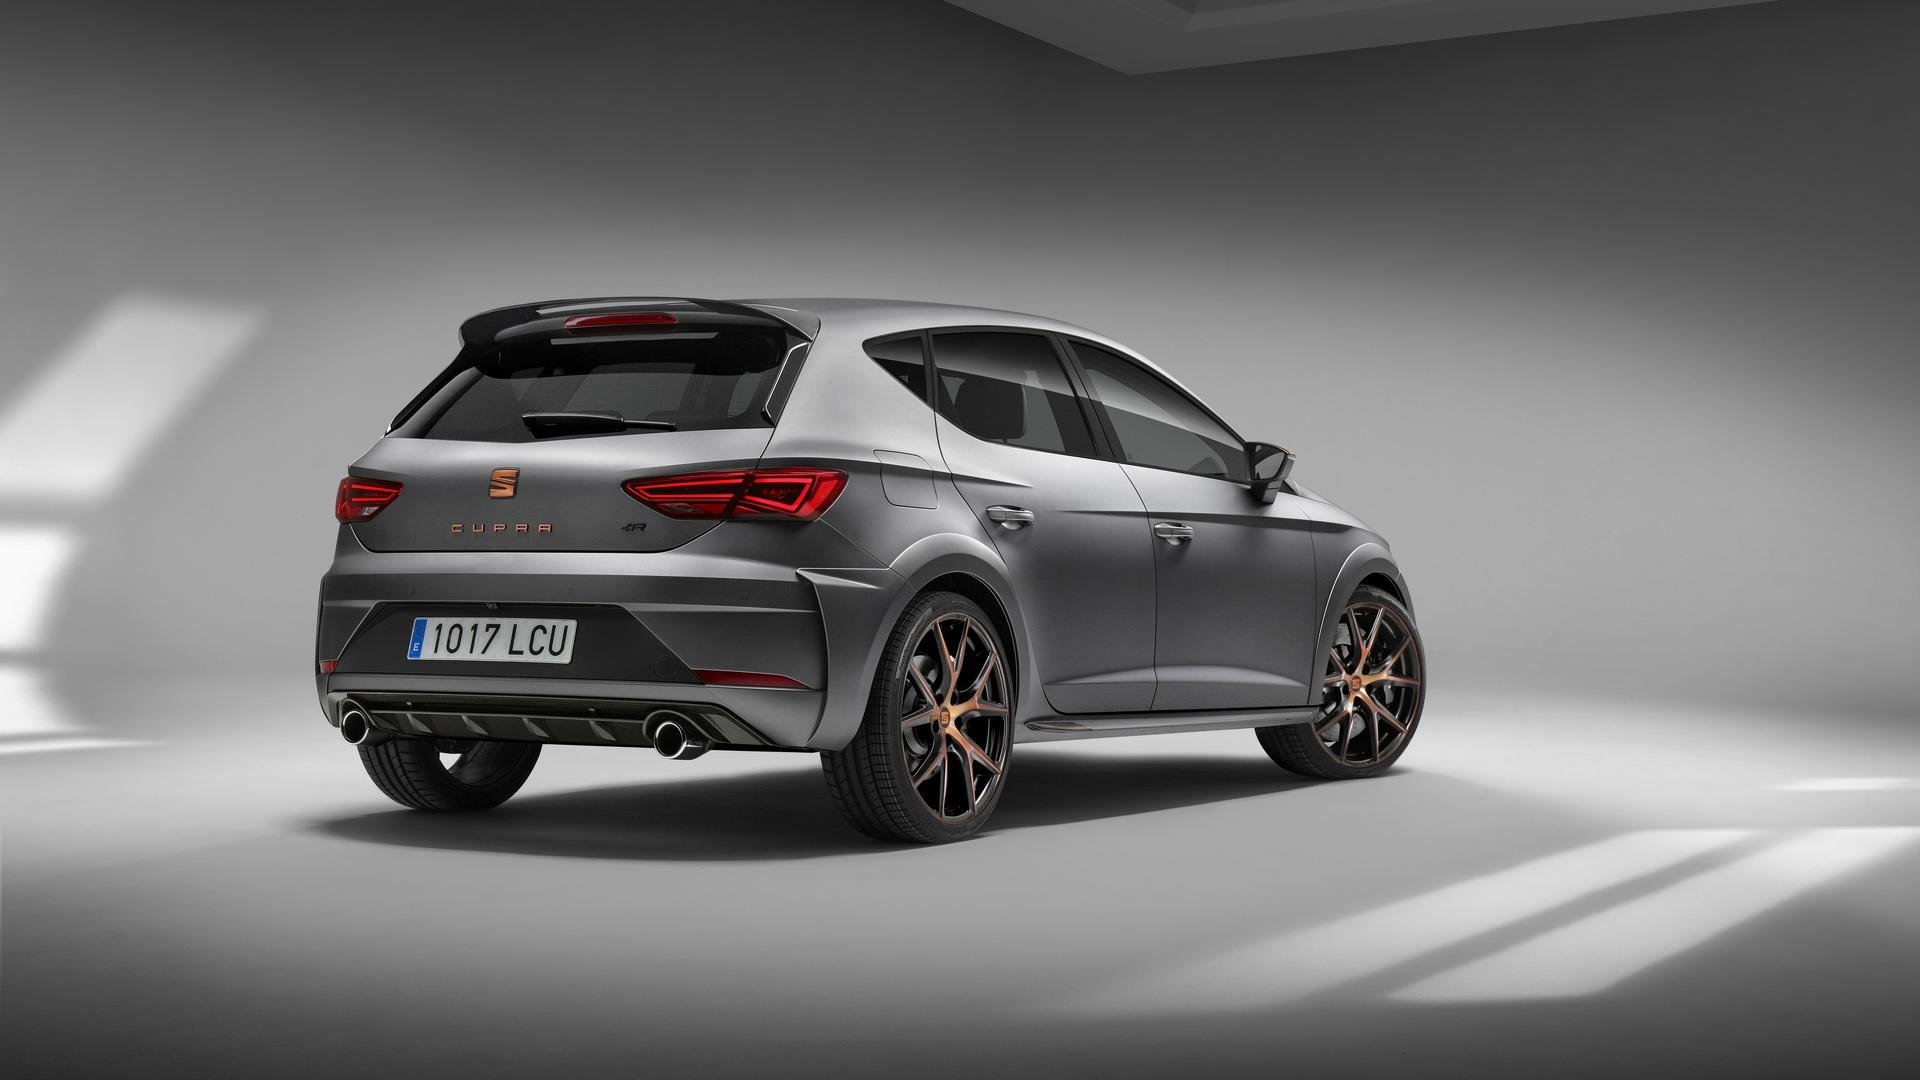 seat leon cupra r comes with 310 hp copper trim and disappointment autoevolution. Black Bedroom Furniture Sets. Home Design Ideas